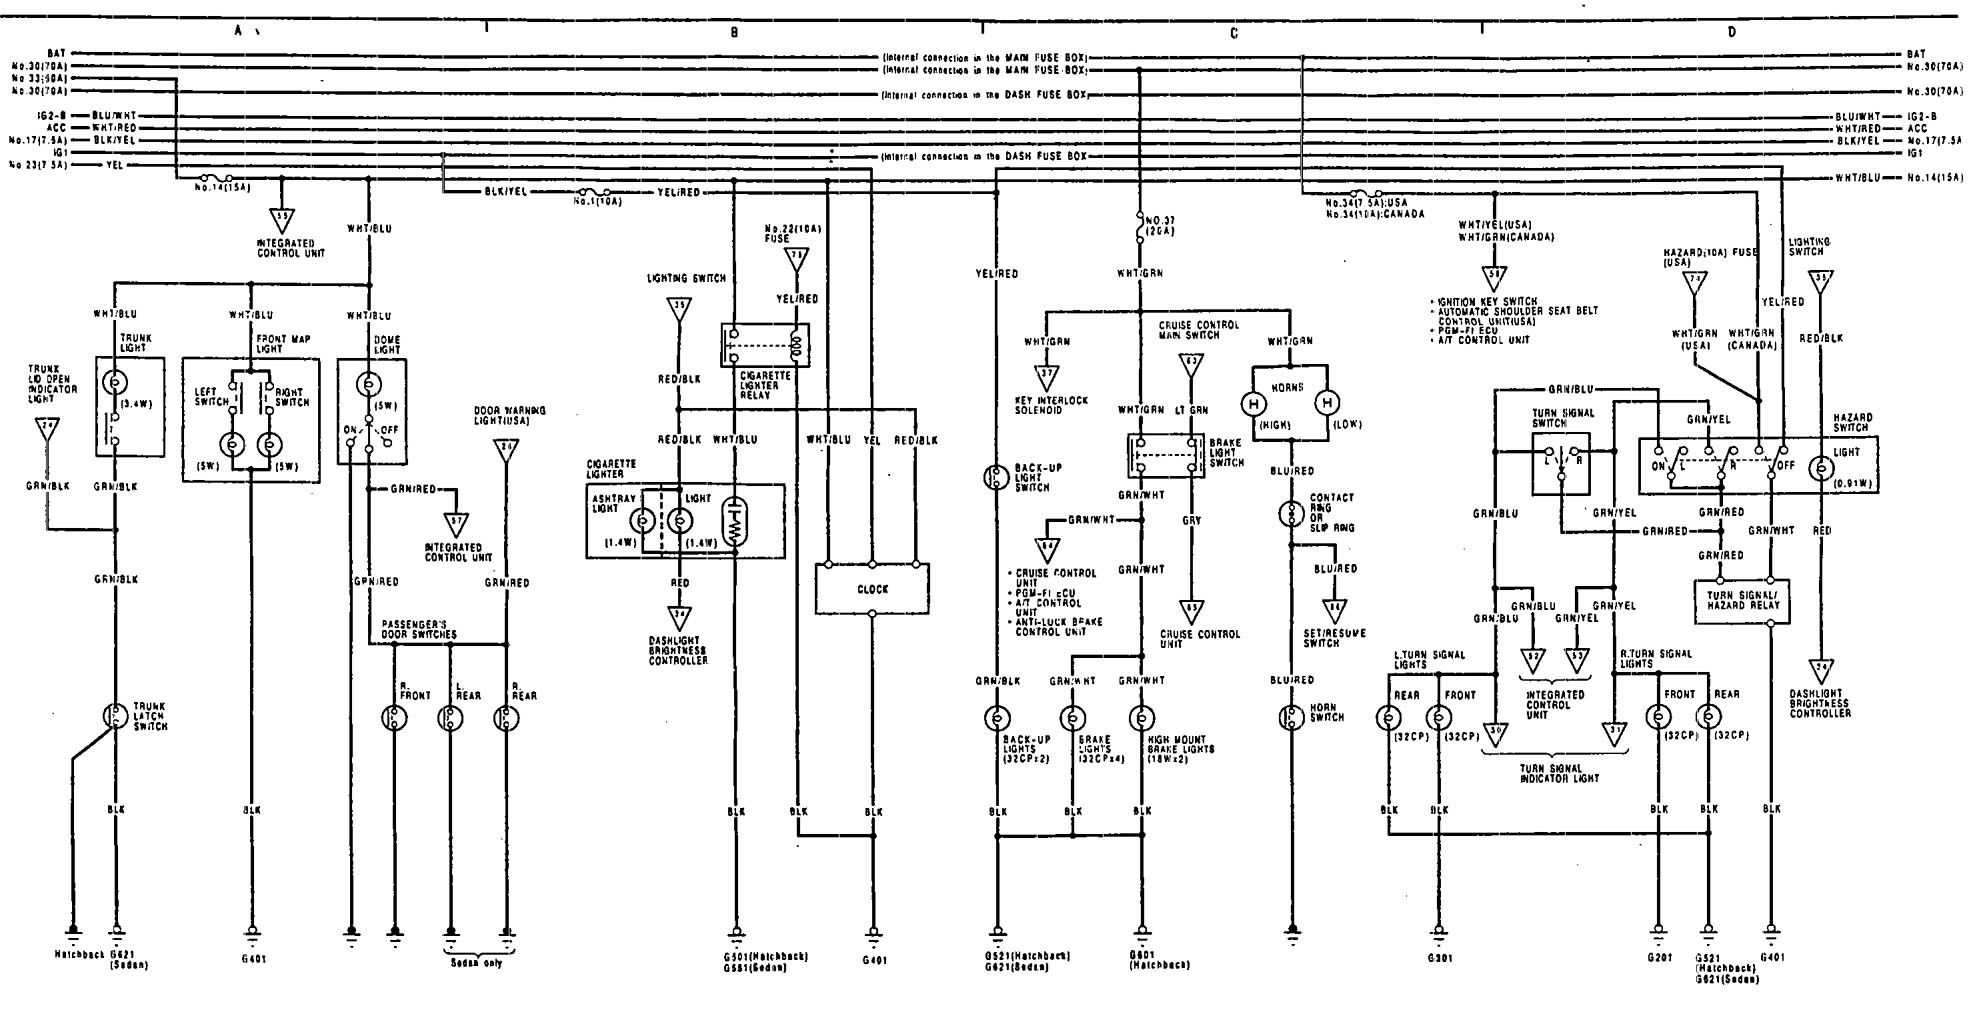 91 240sx fuse box wiring diagram acura integra  1991  wiring diagrams cigar lighter carknowledge  acura integra  1991  wiring diagrams